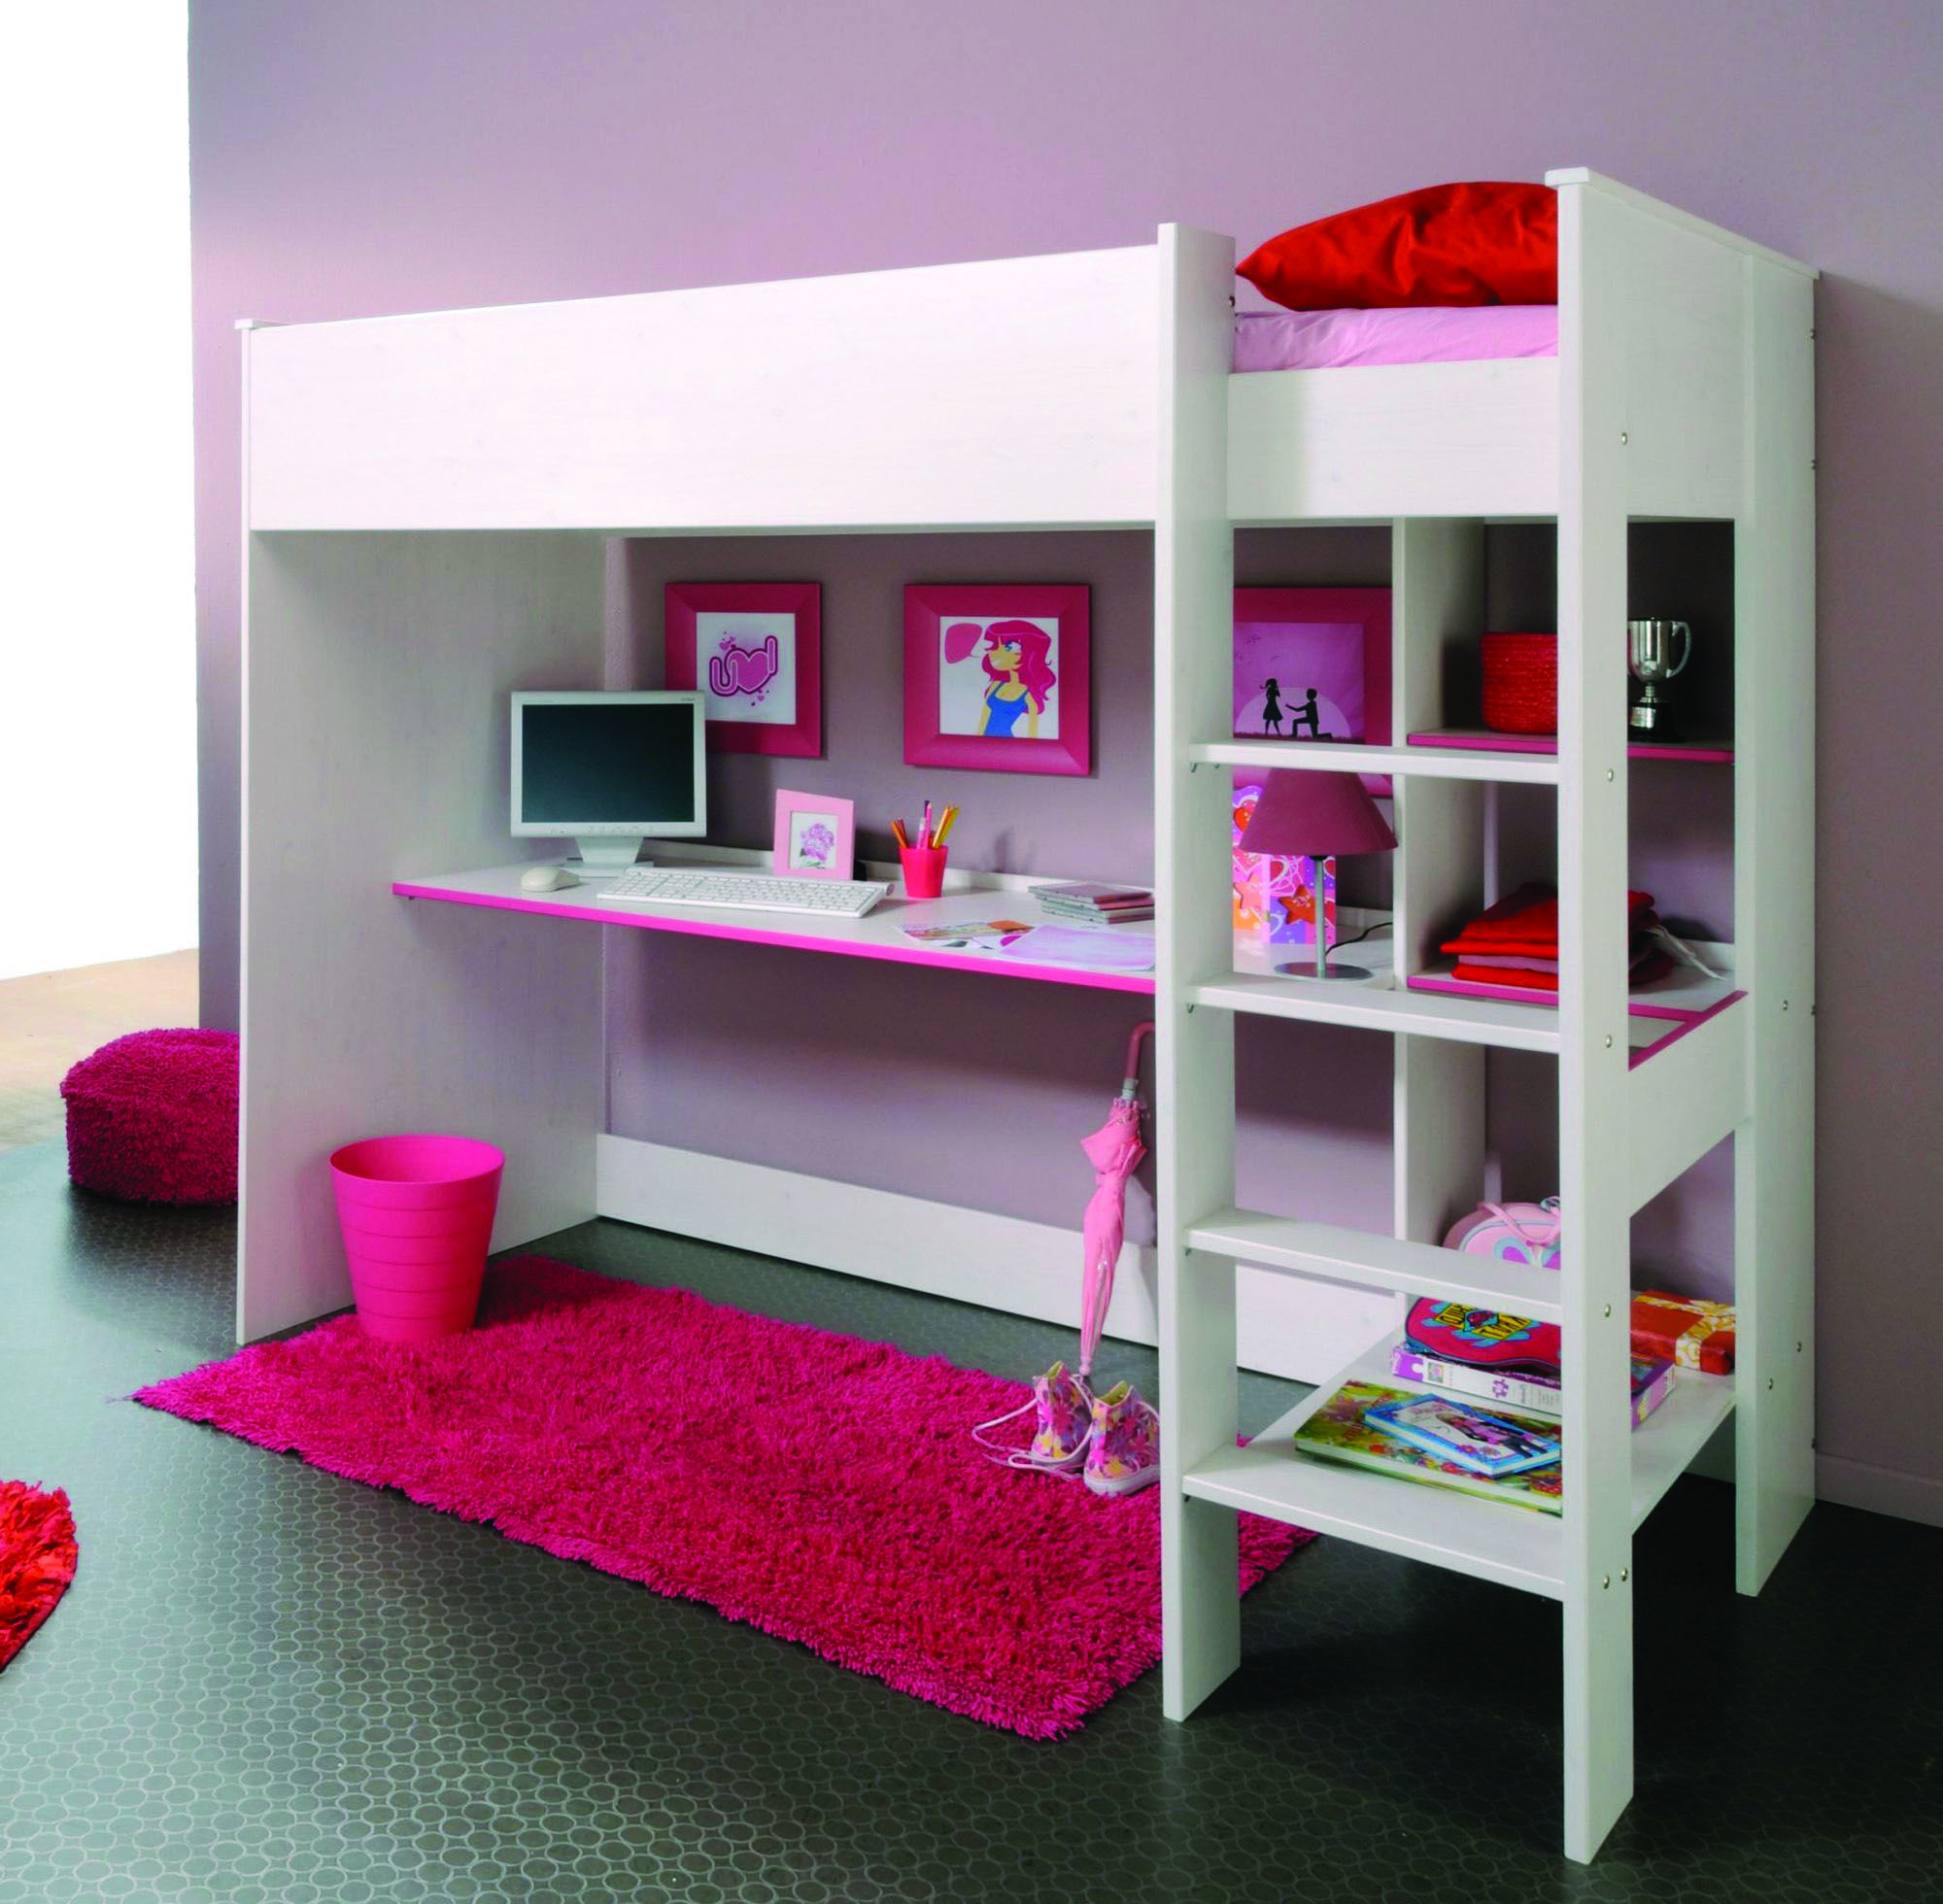 IKEA Bunk Beds   Bunk bed with desk, Ikea bunk bed, Girls ...